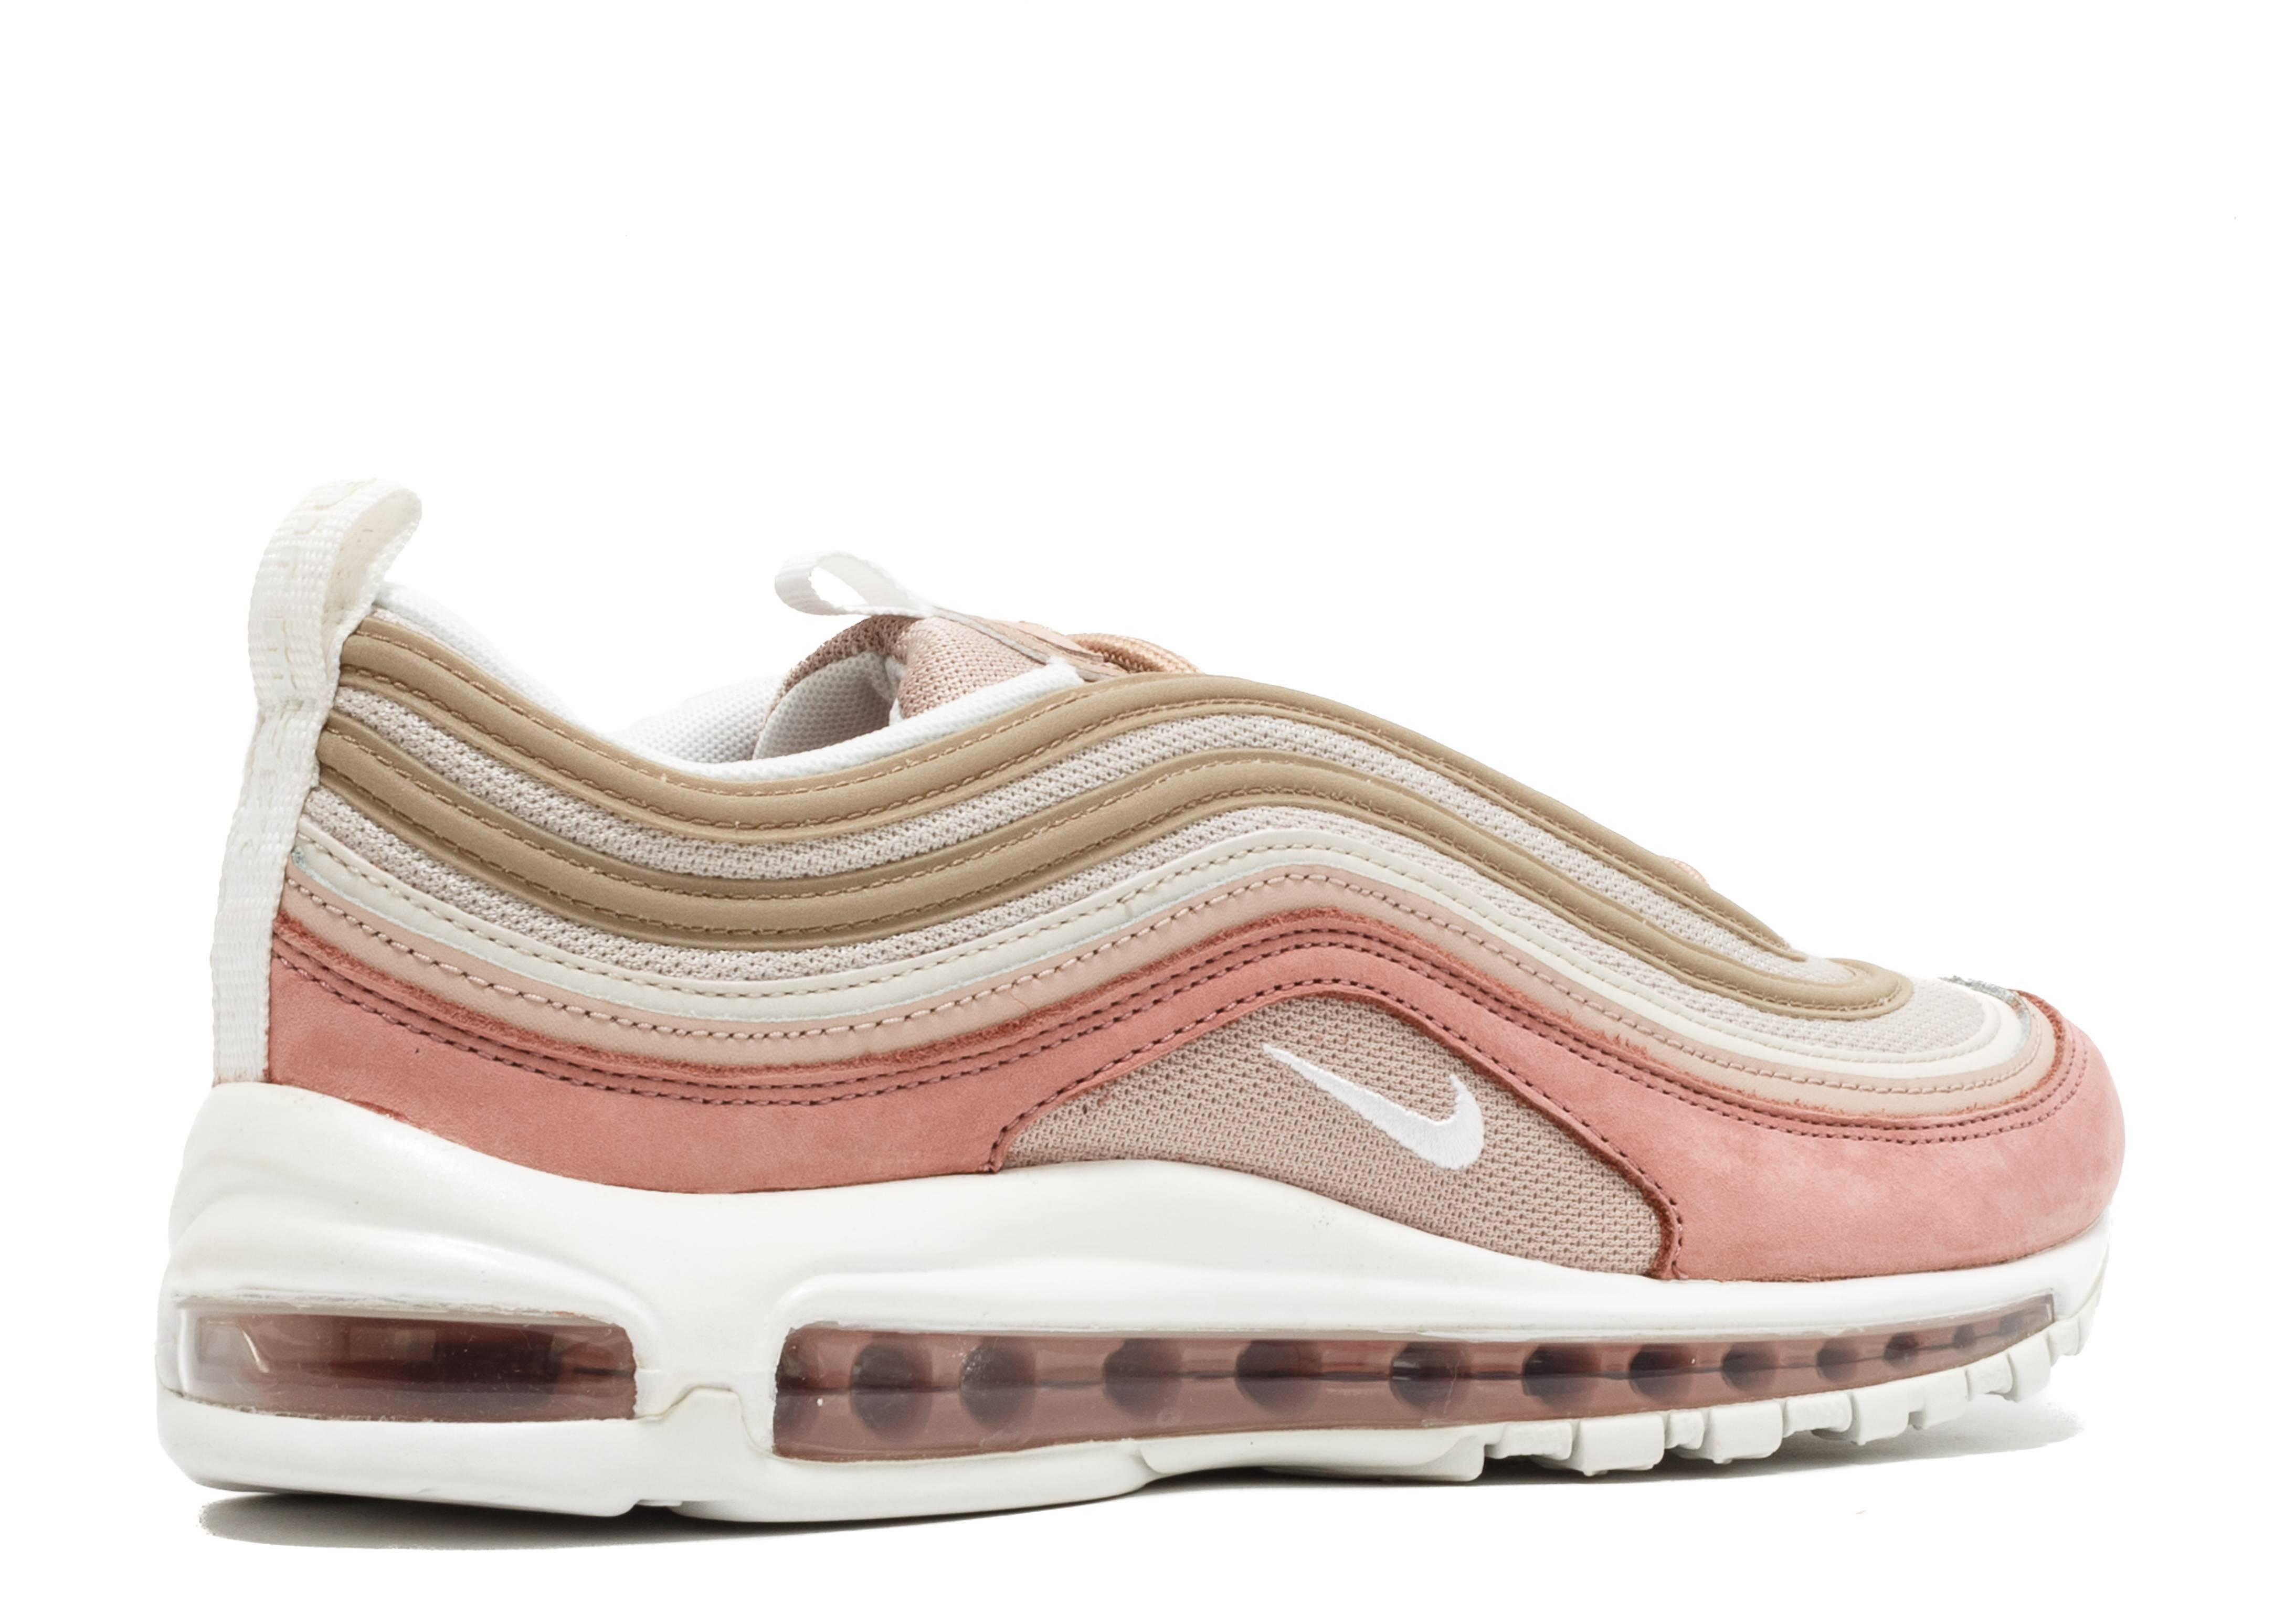 Cheap Nike Air Max 97 Gold Europe Release